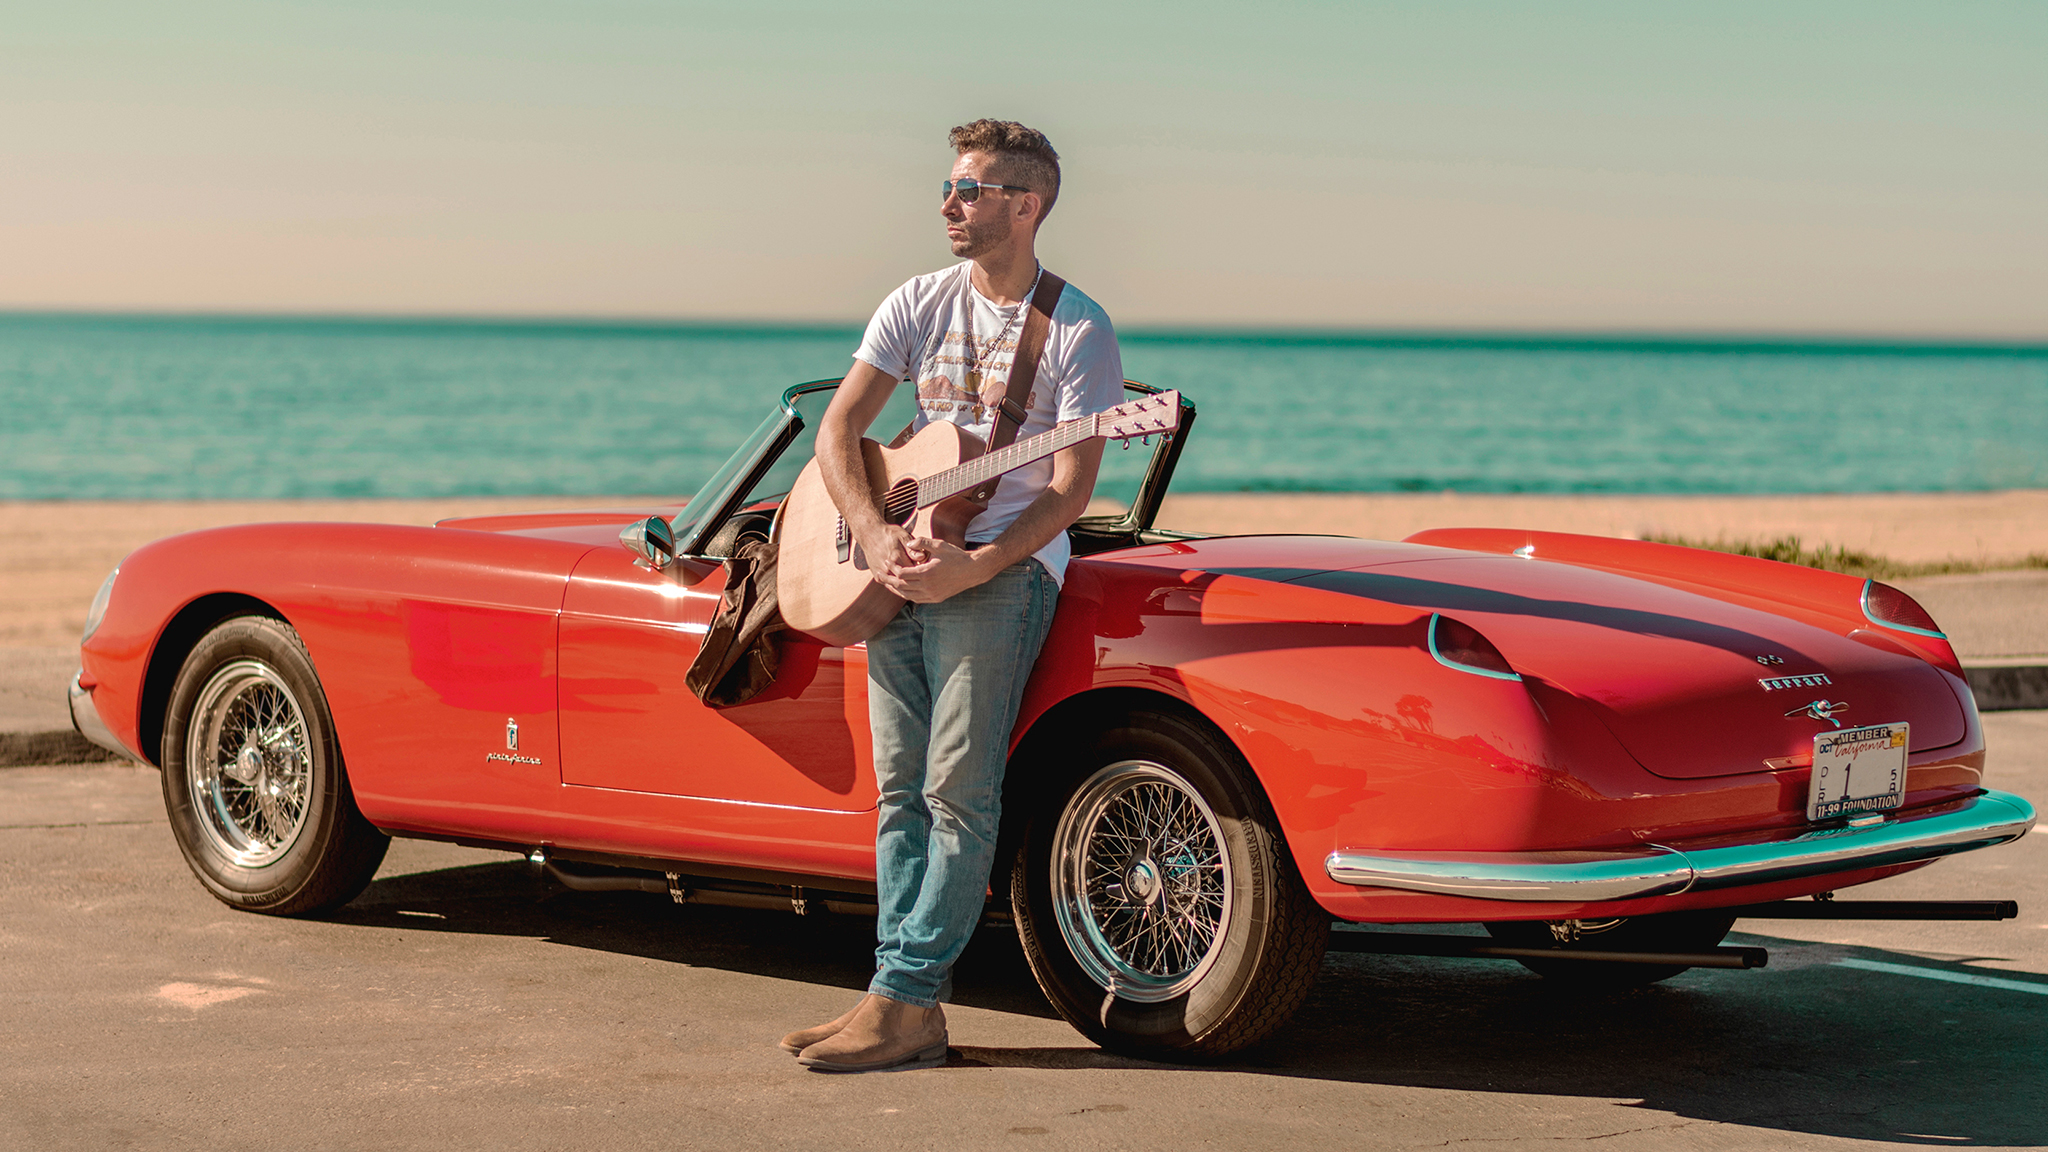 Rising Americana Artist Tom Sless Releases Lyric Video For 'Taking Me Back' Amid High Praise For 'Assurance, Craft And Conviction' On 'Uplifting' Debut Album, 'California Dream'